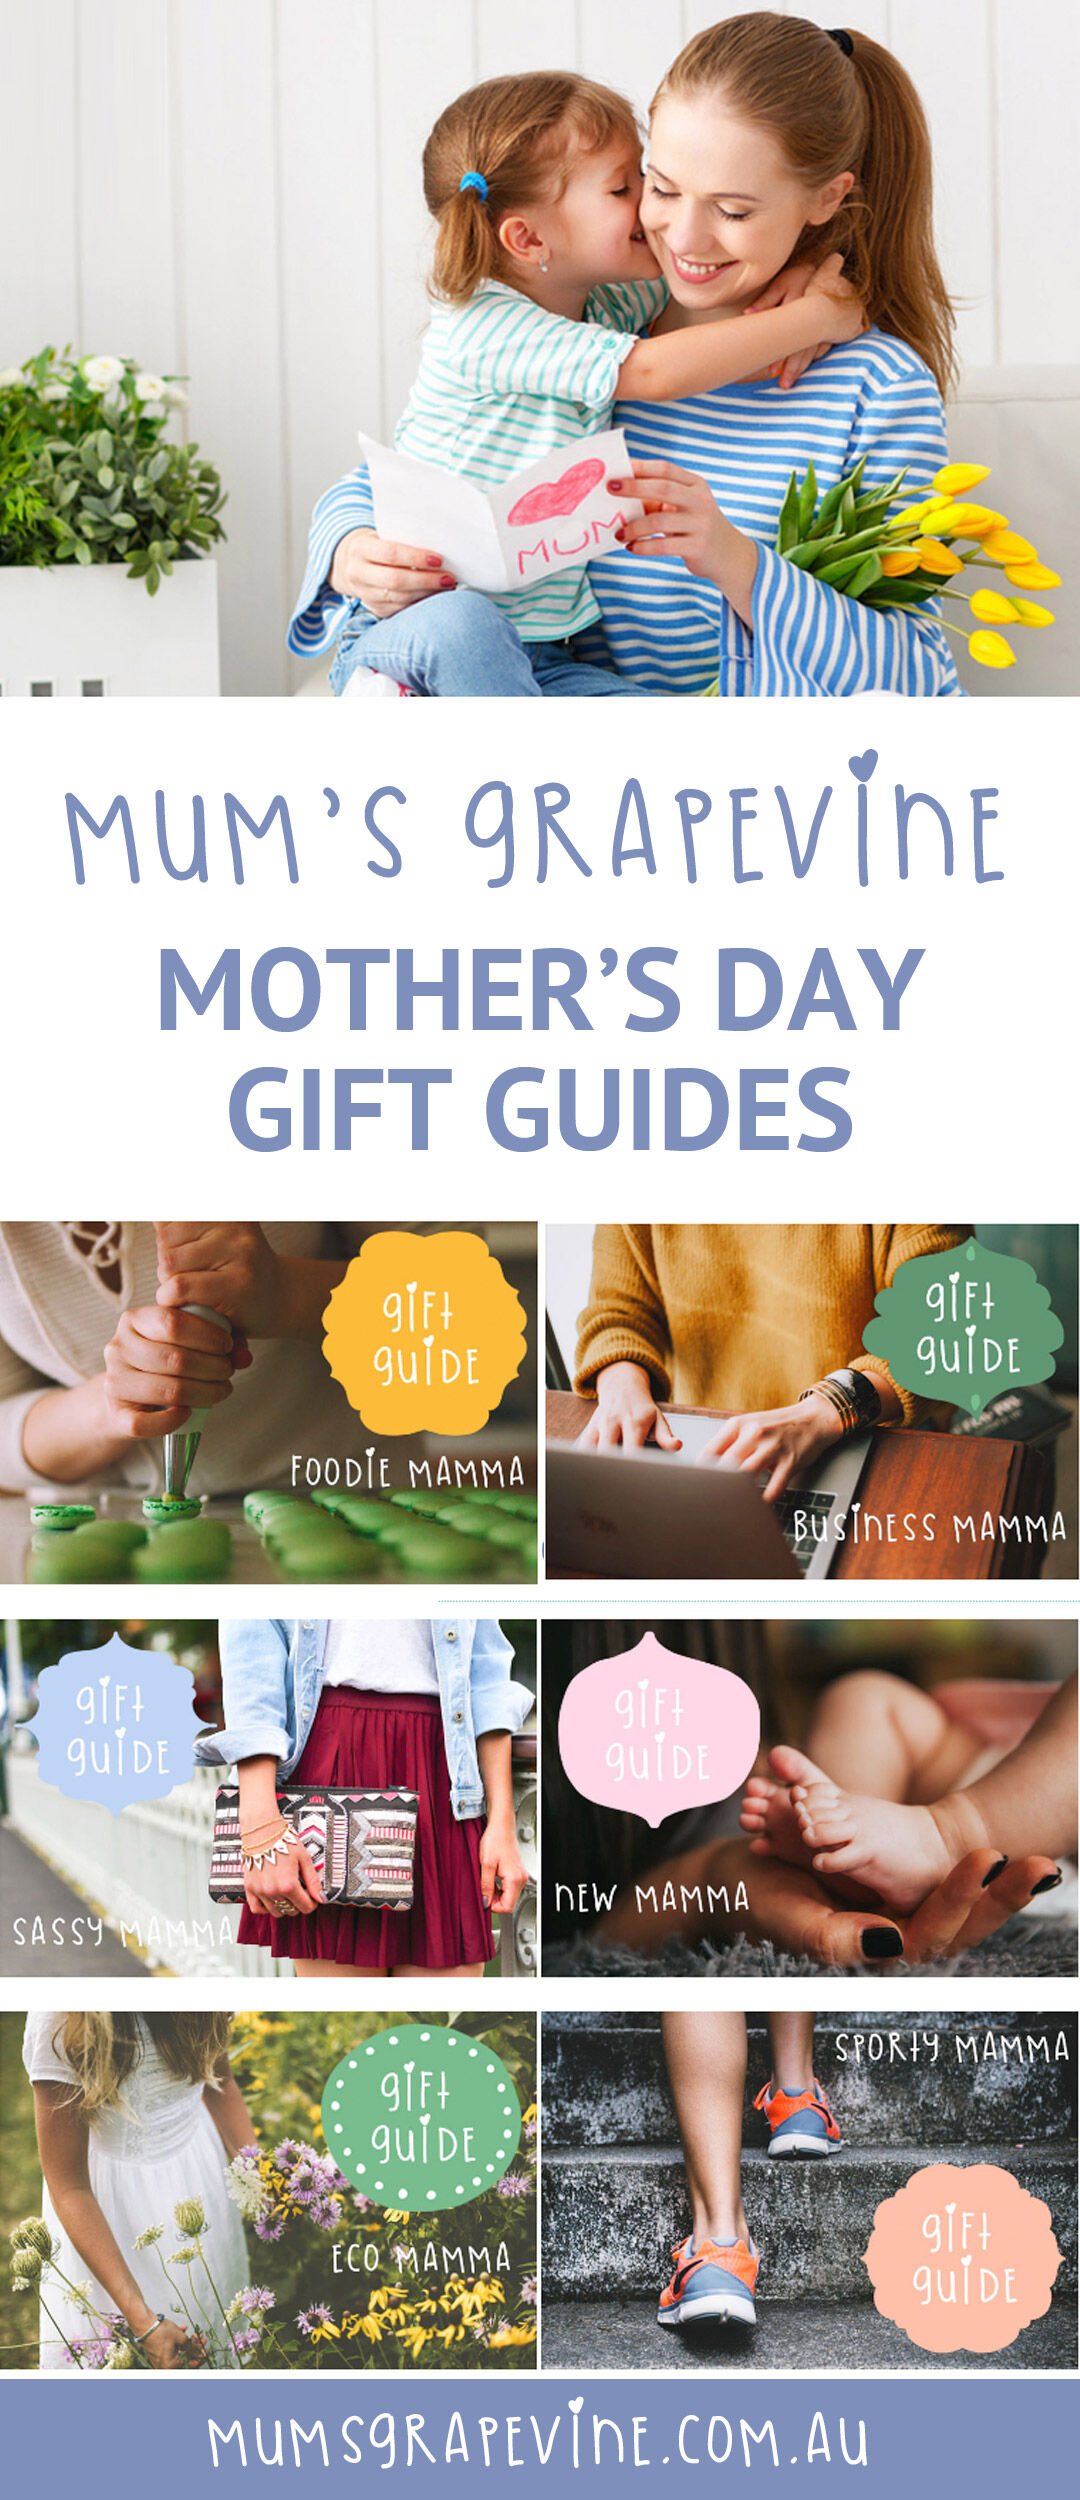 2018 Mother's Day Gift Guide Pins